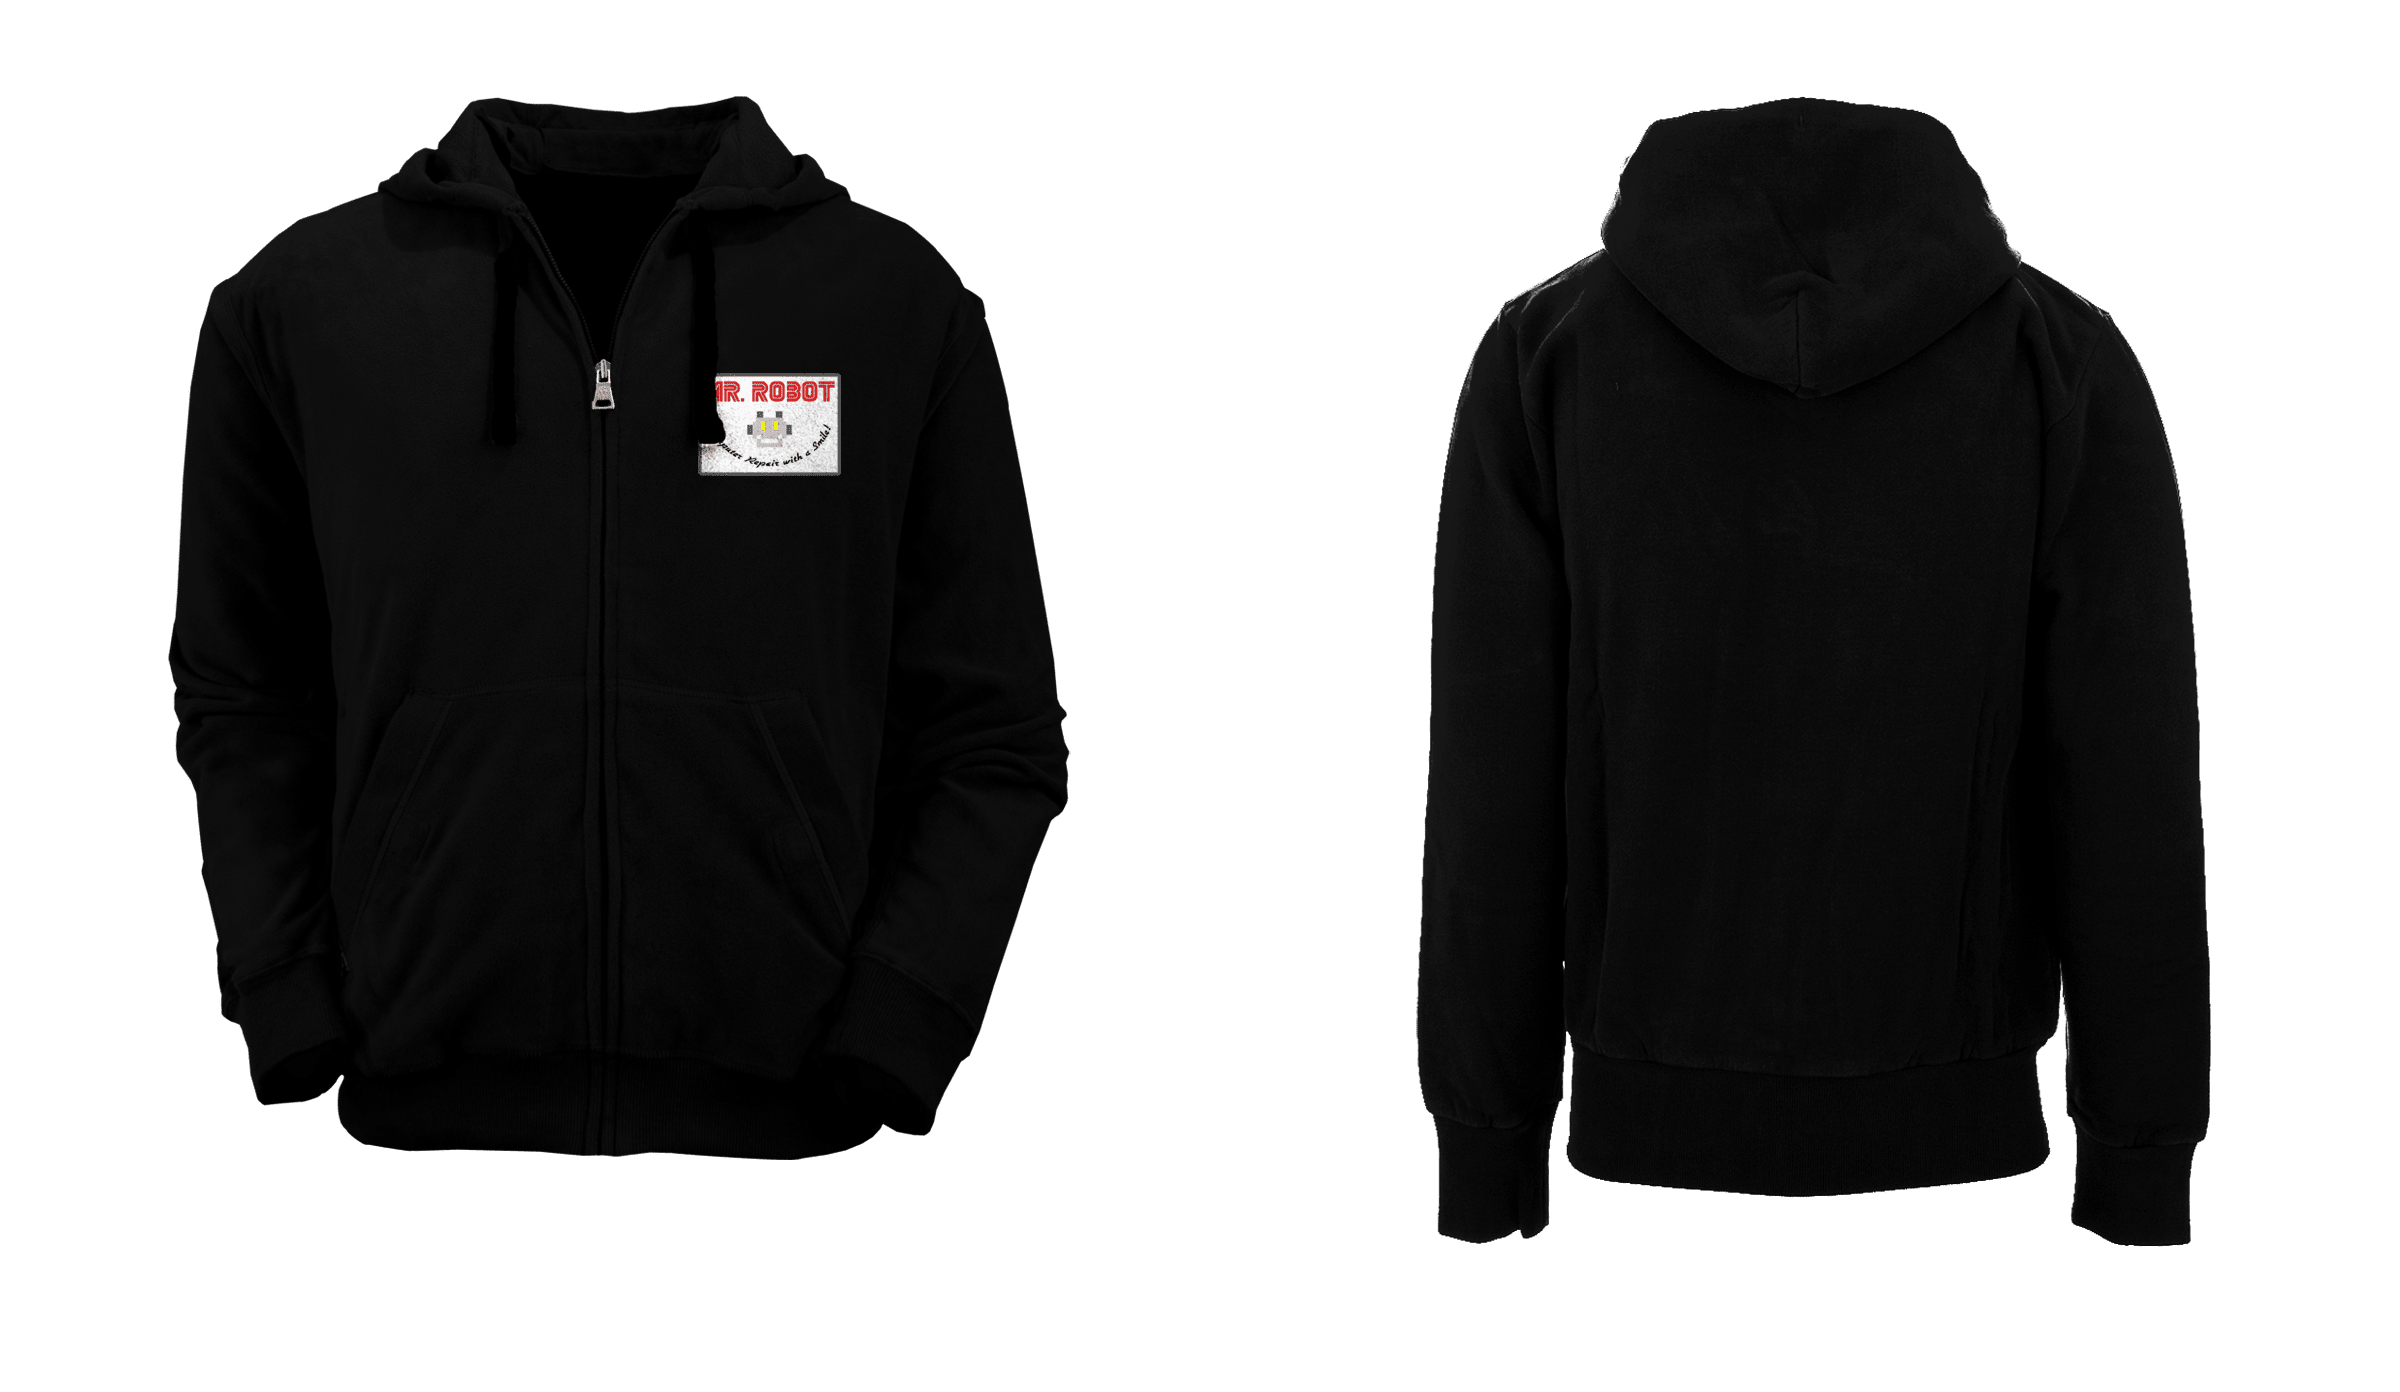 hoodie_template_with_back_by_theapparelguy-d56d07u